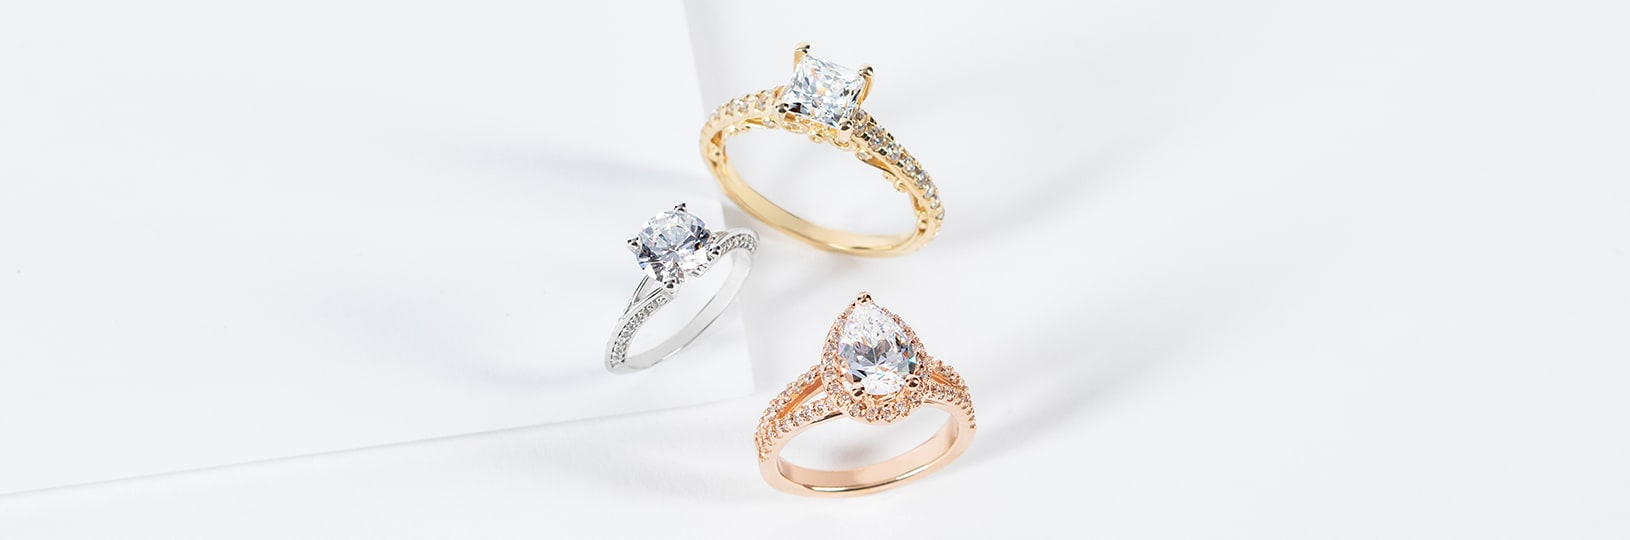 Two vintage engagement rings